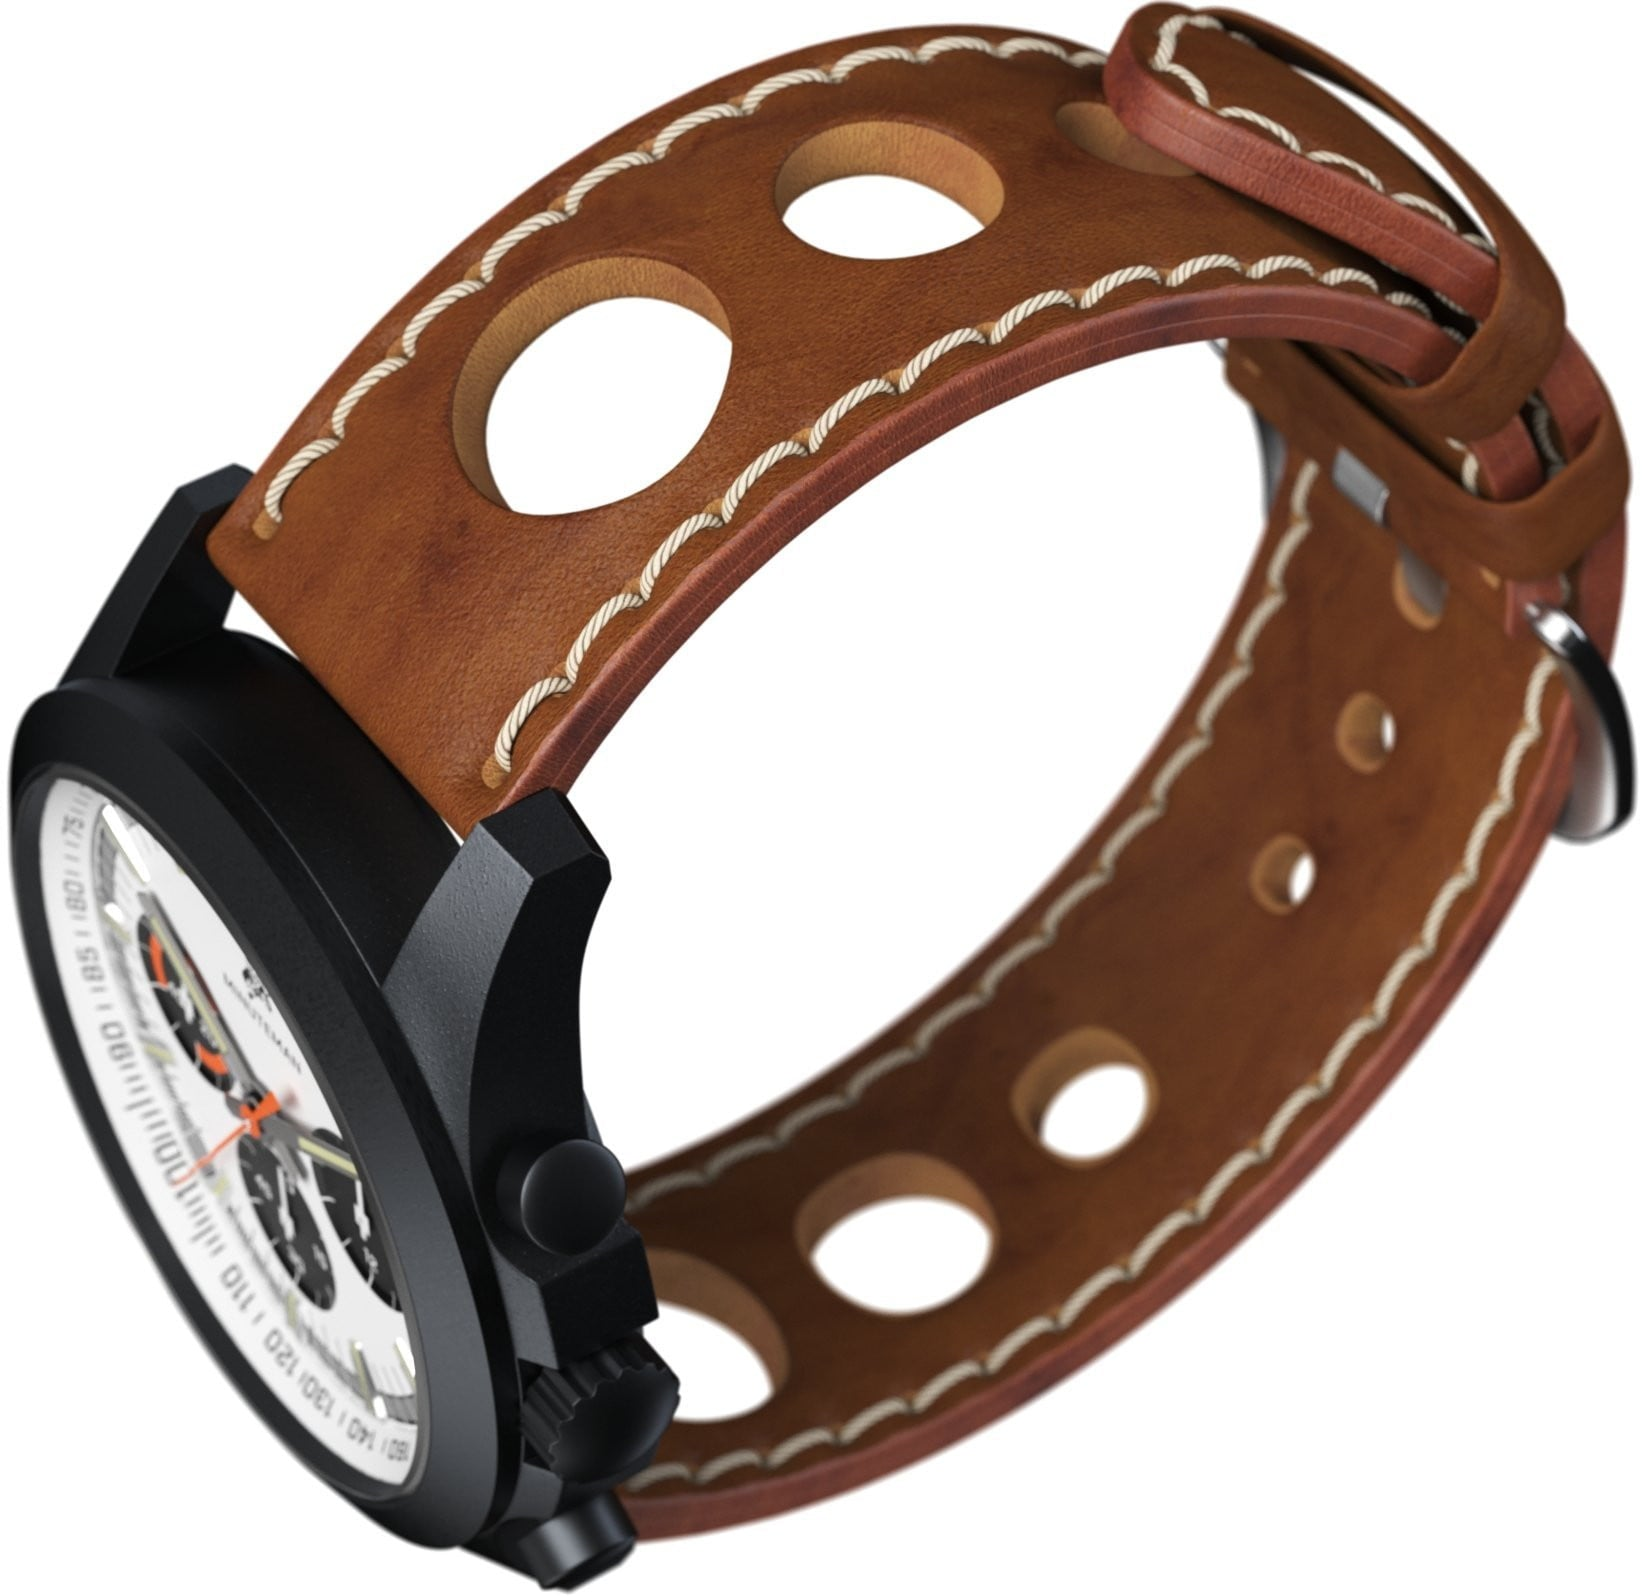 Minuteman Parker Chronograph Watch Brown Leather Strap DLC Panda Dial,minutemanwatches,Minuteman,Wrist Watch